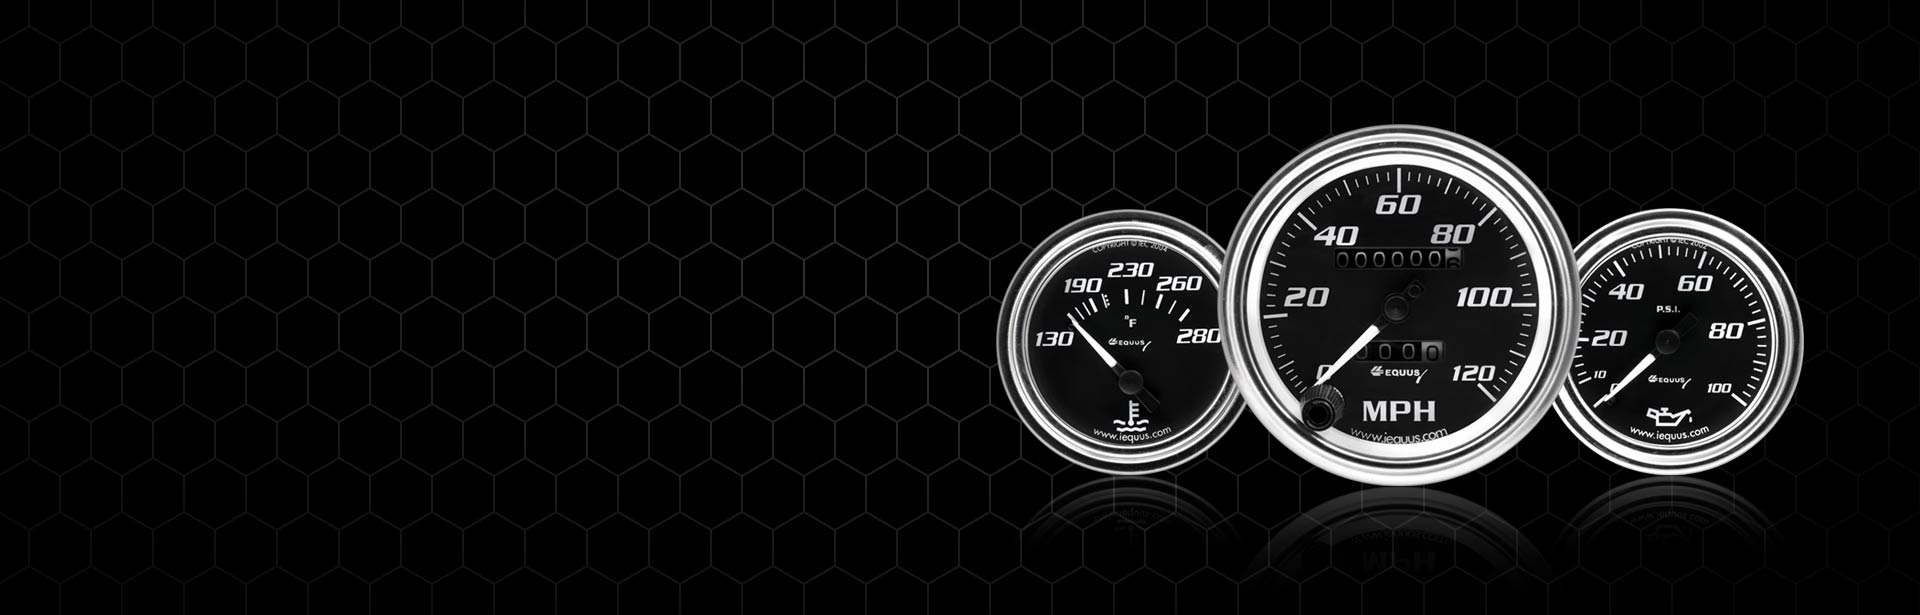 iEquus - Replacement Tachometers, Speedometers and Gauge Kits